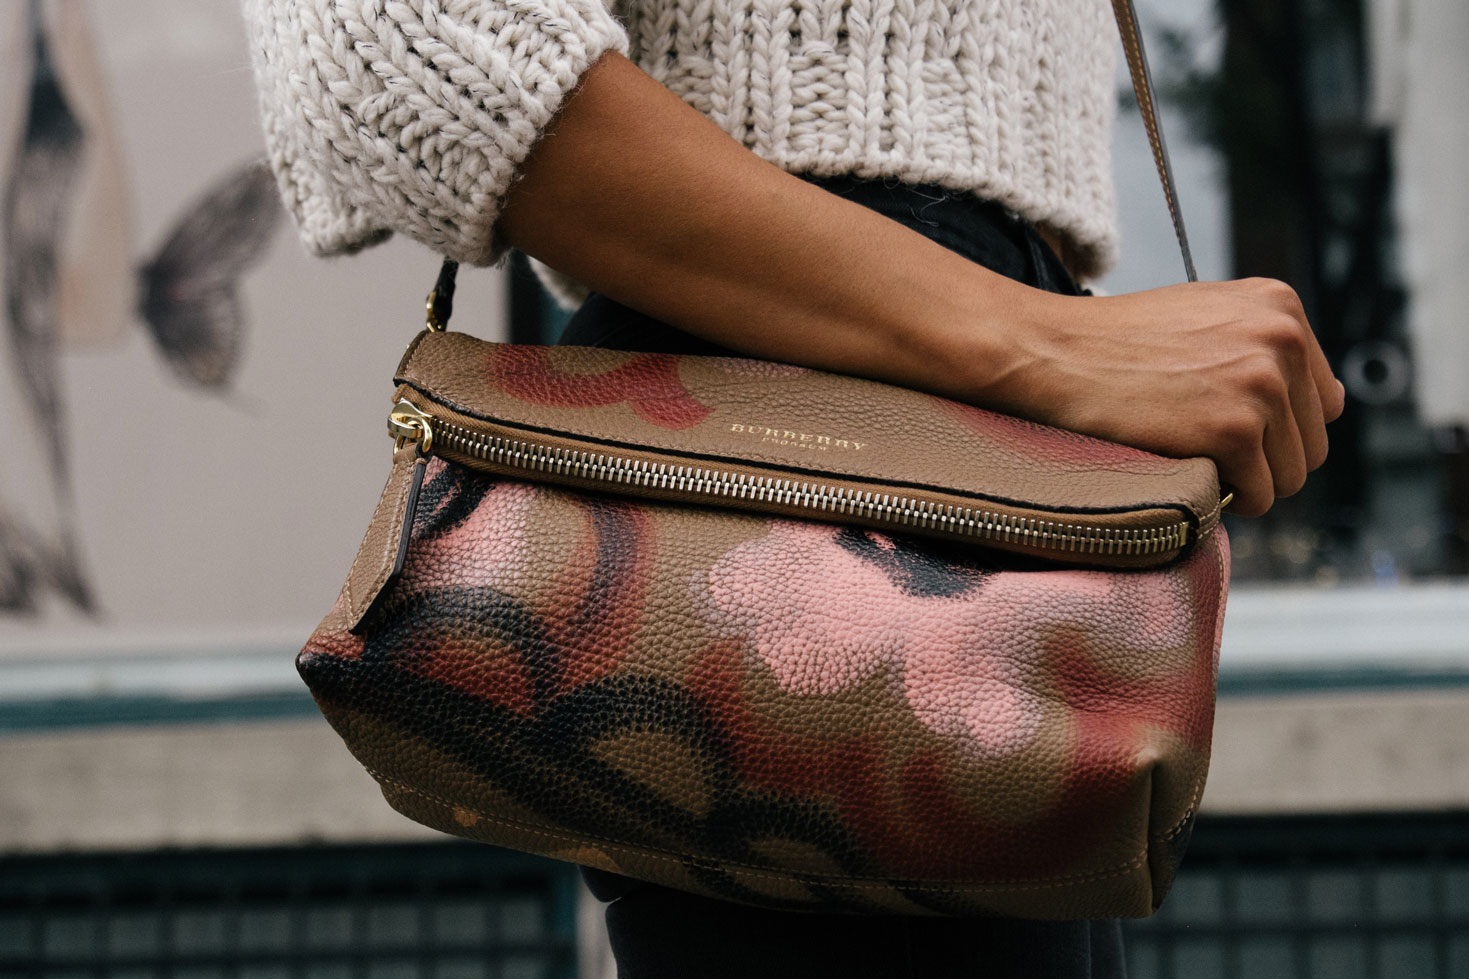 A woman wearing a white knit sweater carrying a signature Burberry bag in hand.